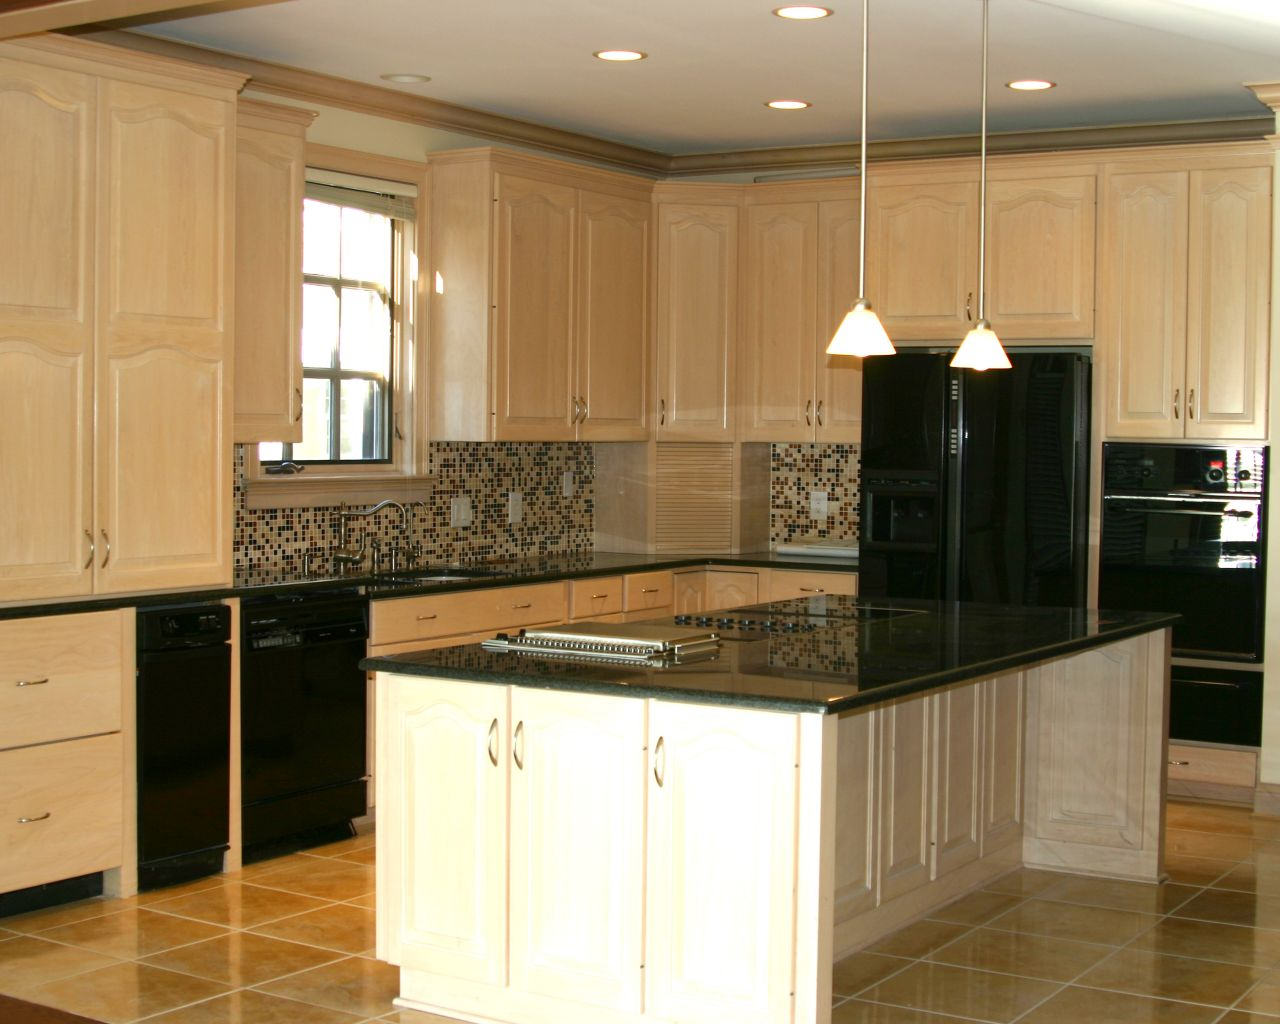 Kitchen Cabinets Akron Ohio 2014 Kitchen Remodeling Design Trends & Ideas Cleveland Akron Ohio